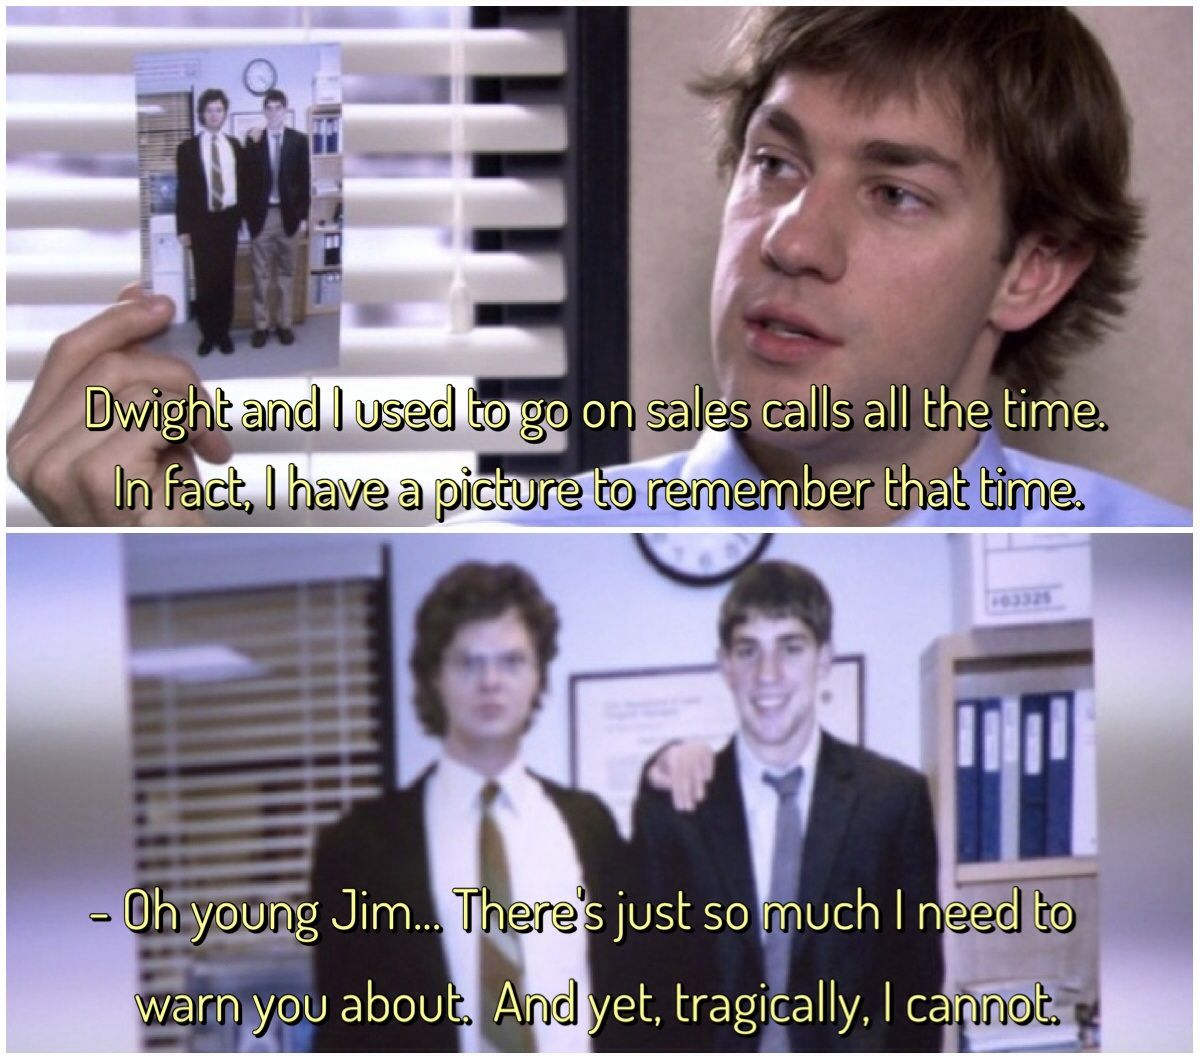 Oh young Jim   | Office humor, Office tv, Office memes